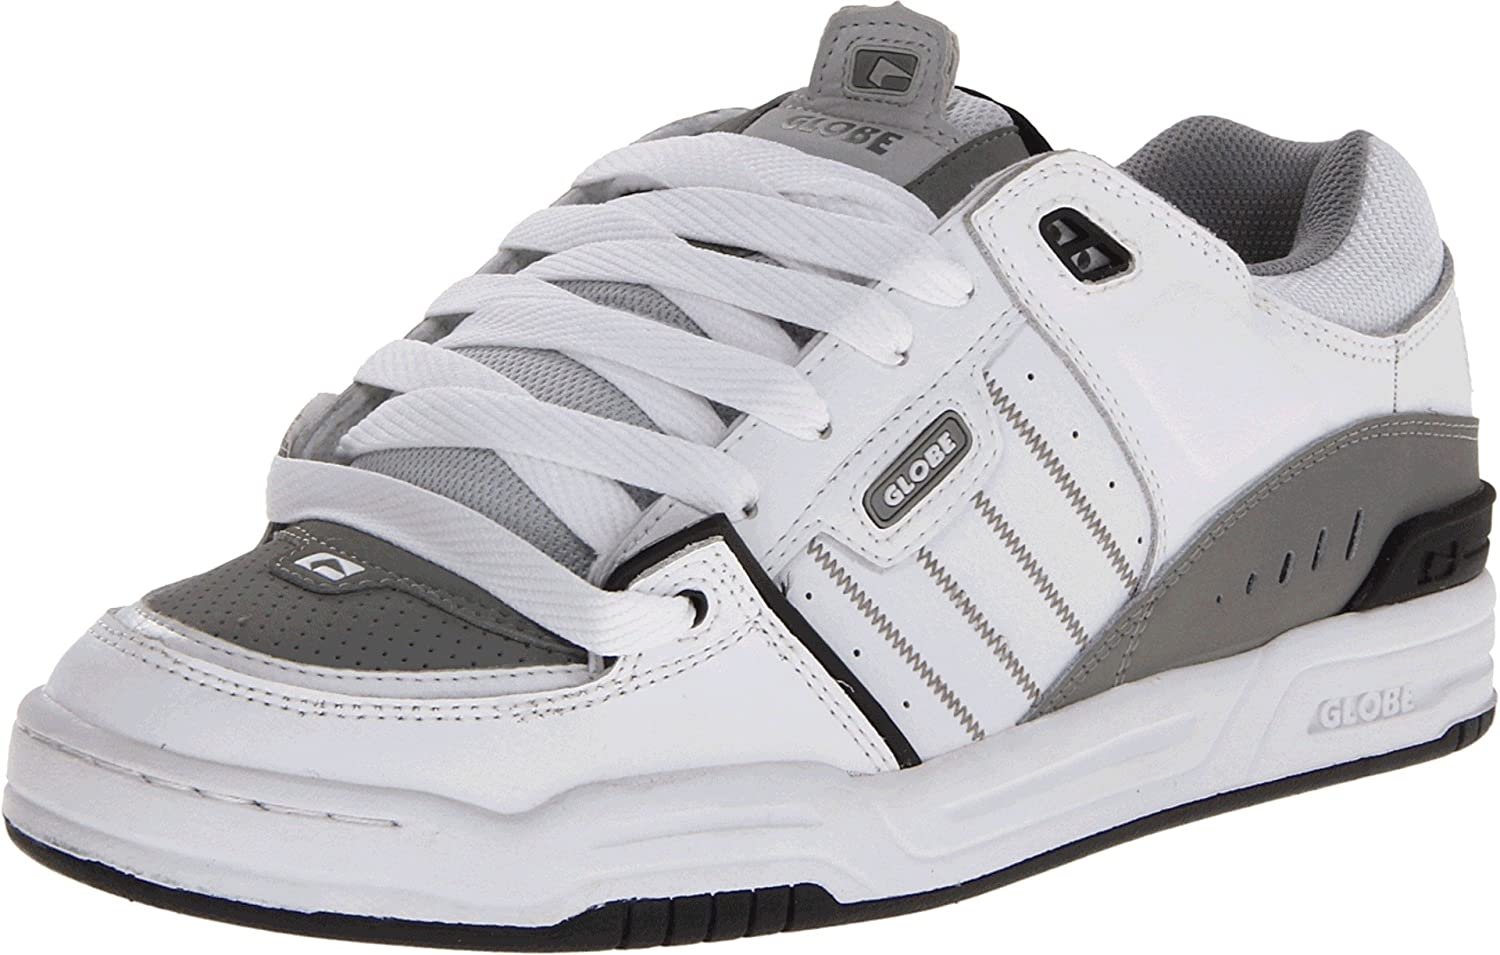 Globe Mens Fusion Skate Shoes 8.5 D(M) US|White/Grey/Black